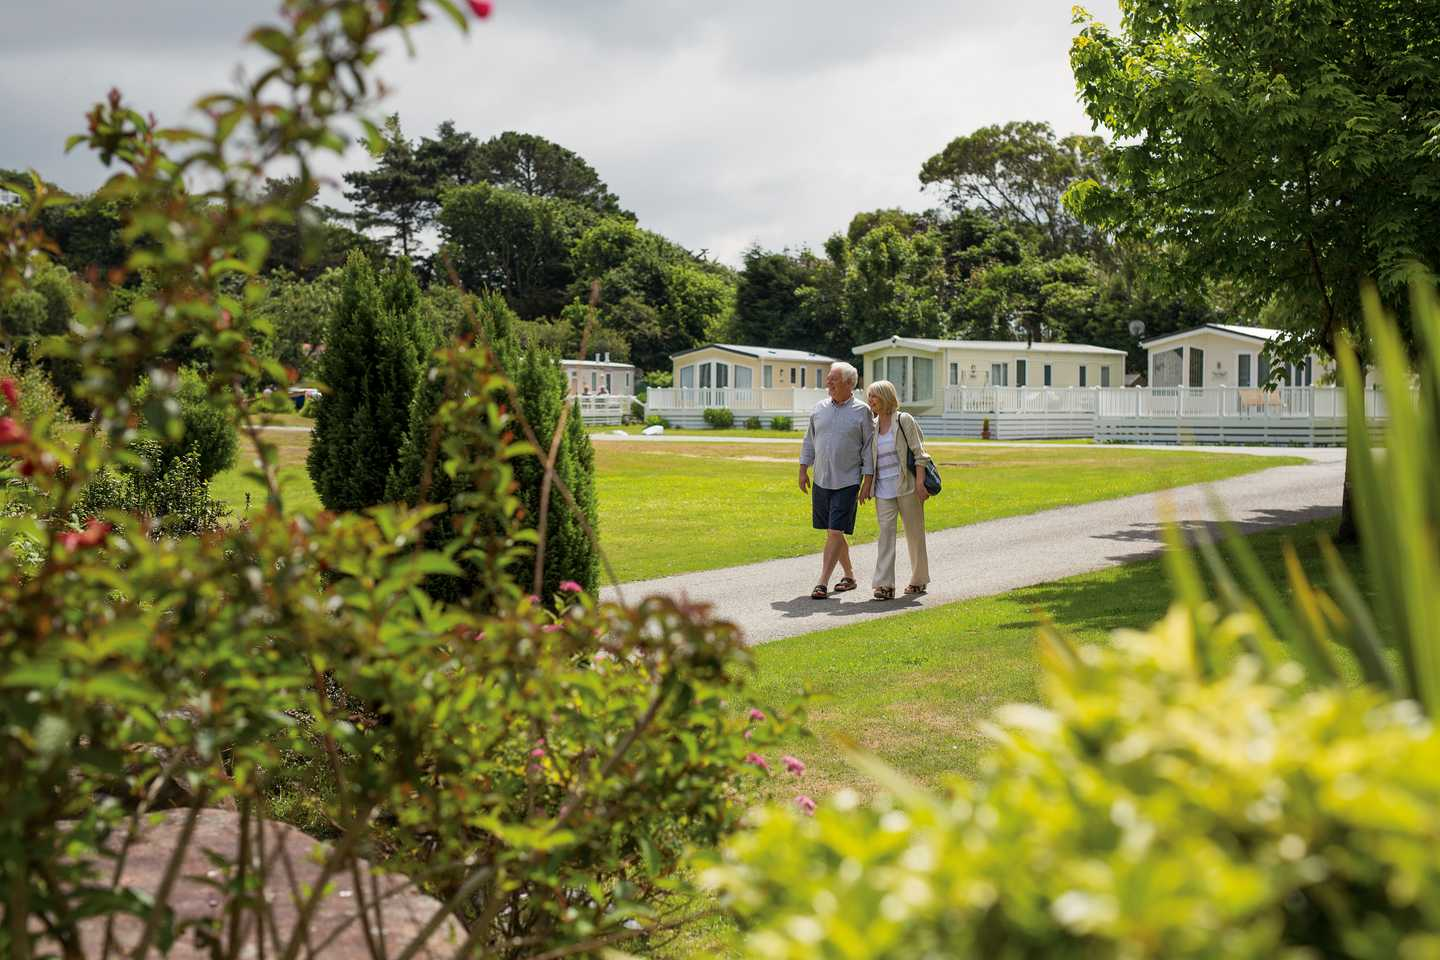 Owners walking through Garreg Wen Caravan Park in North Wales